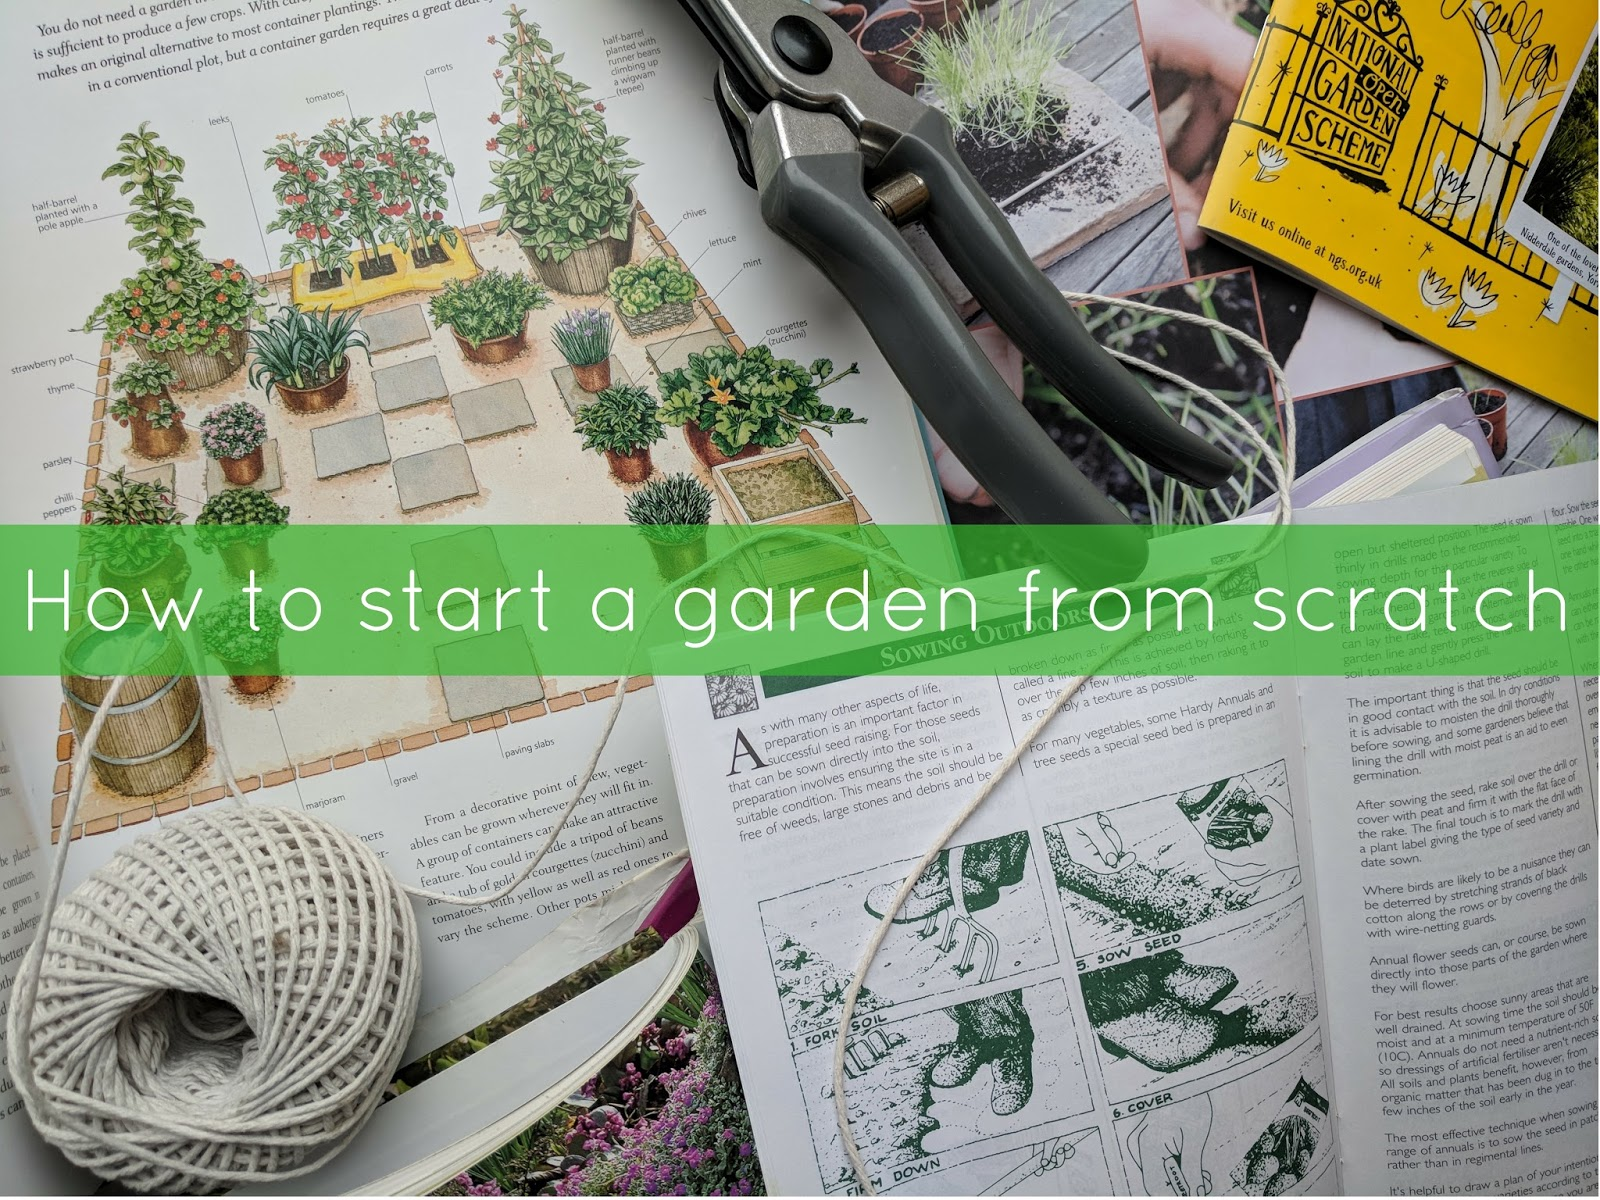 Jibberjabberuk for How to start a garden from scratch